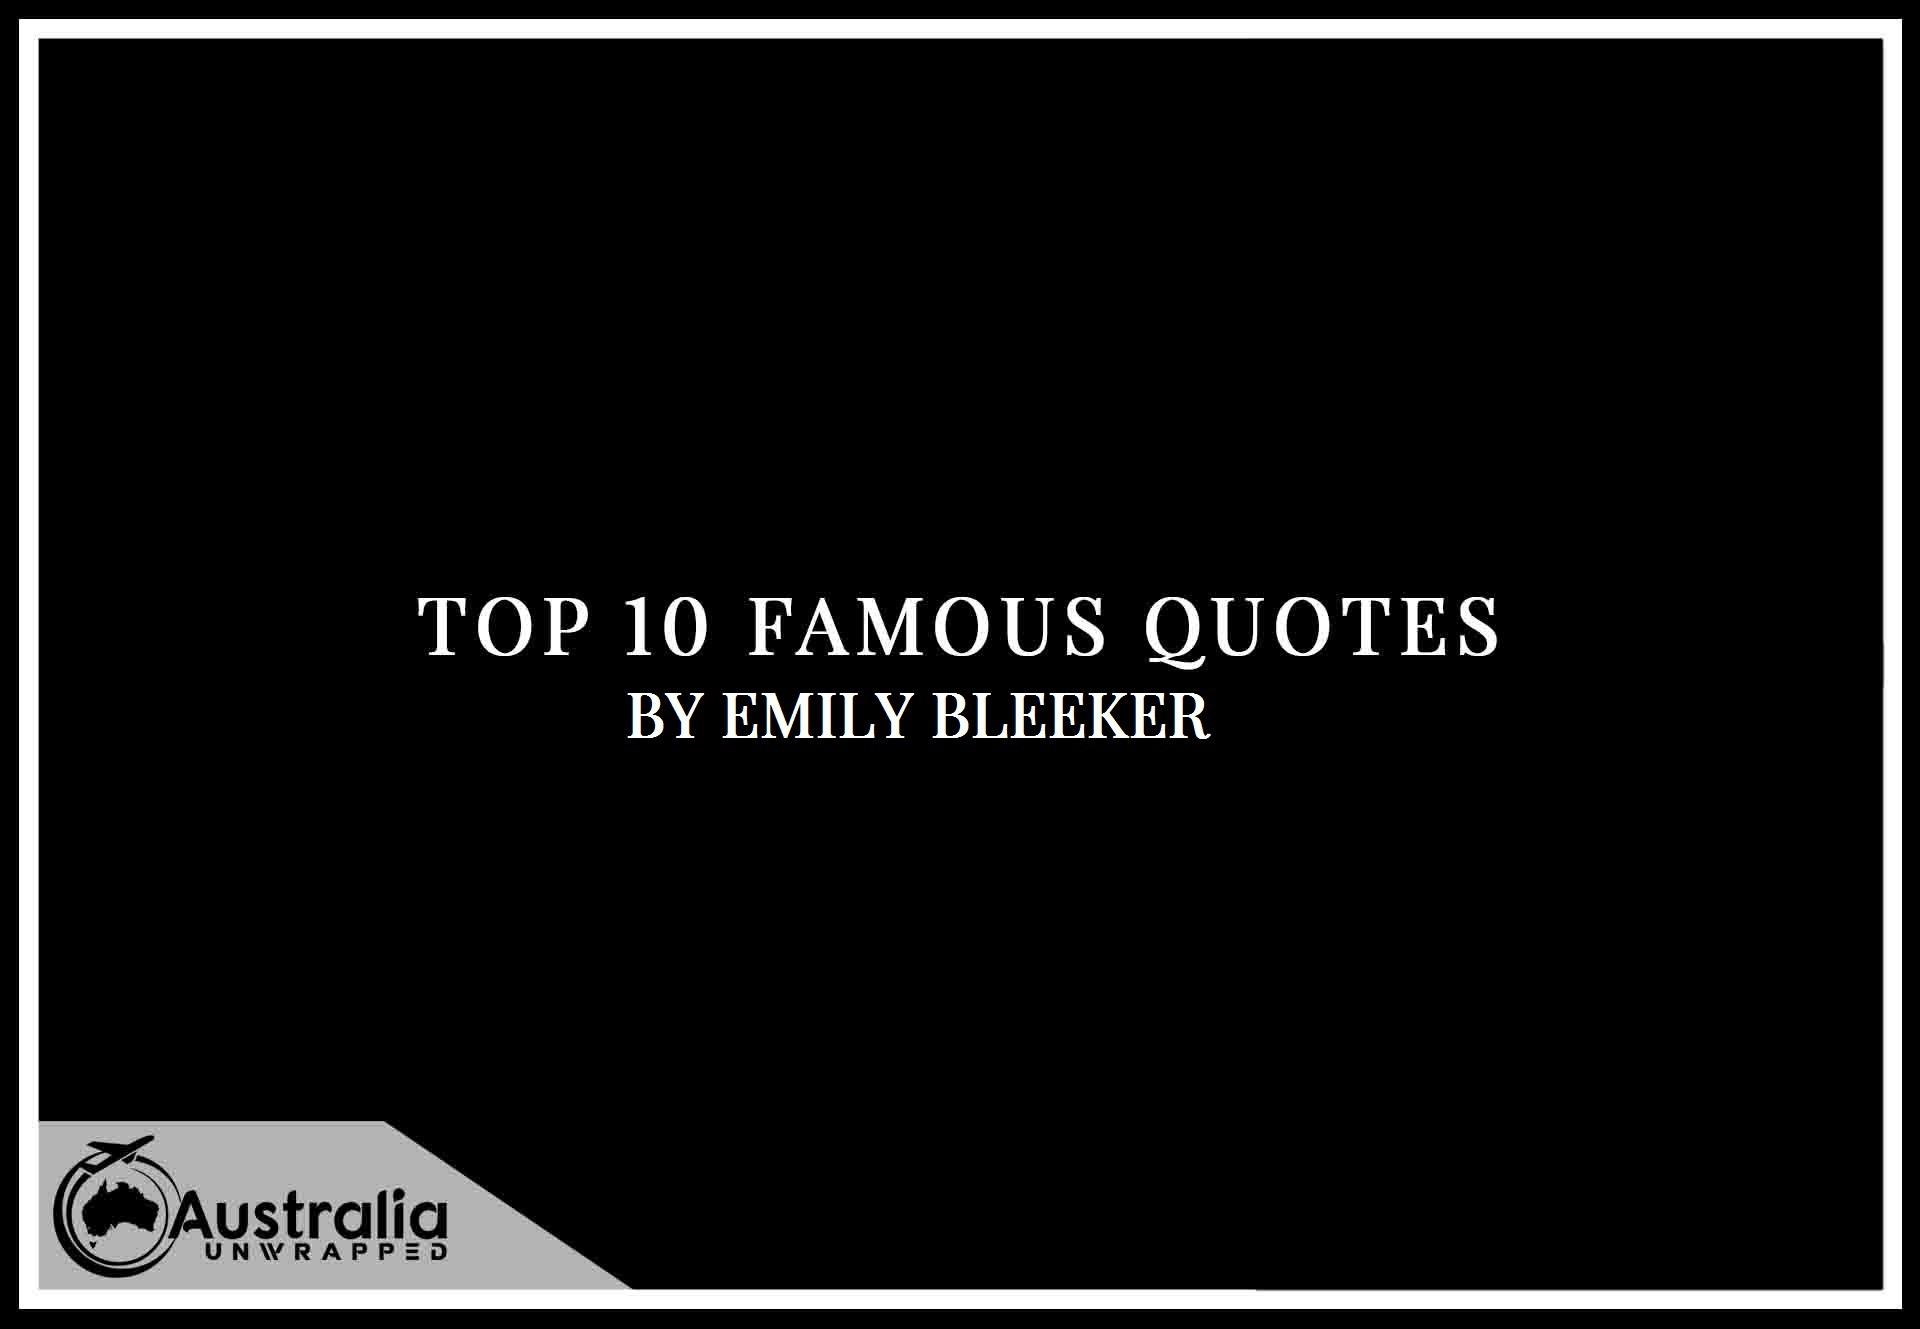 Emily Bleeker's Top 10 Popular and Famous Quotes